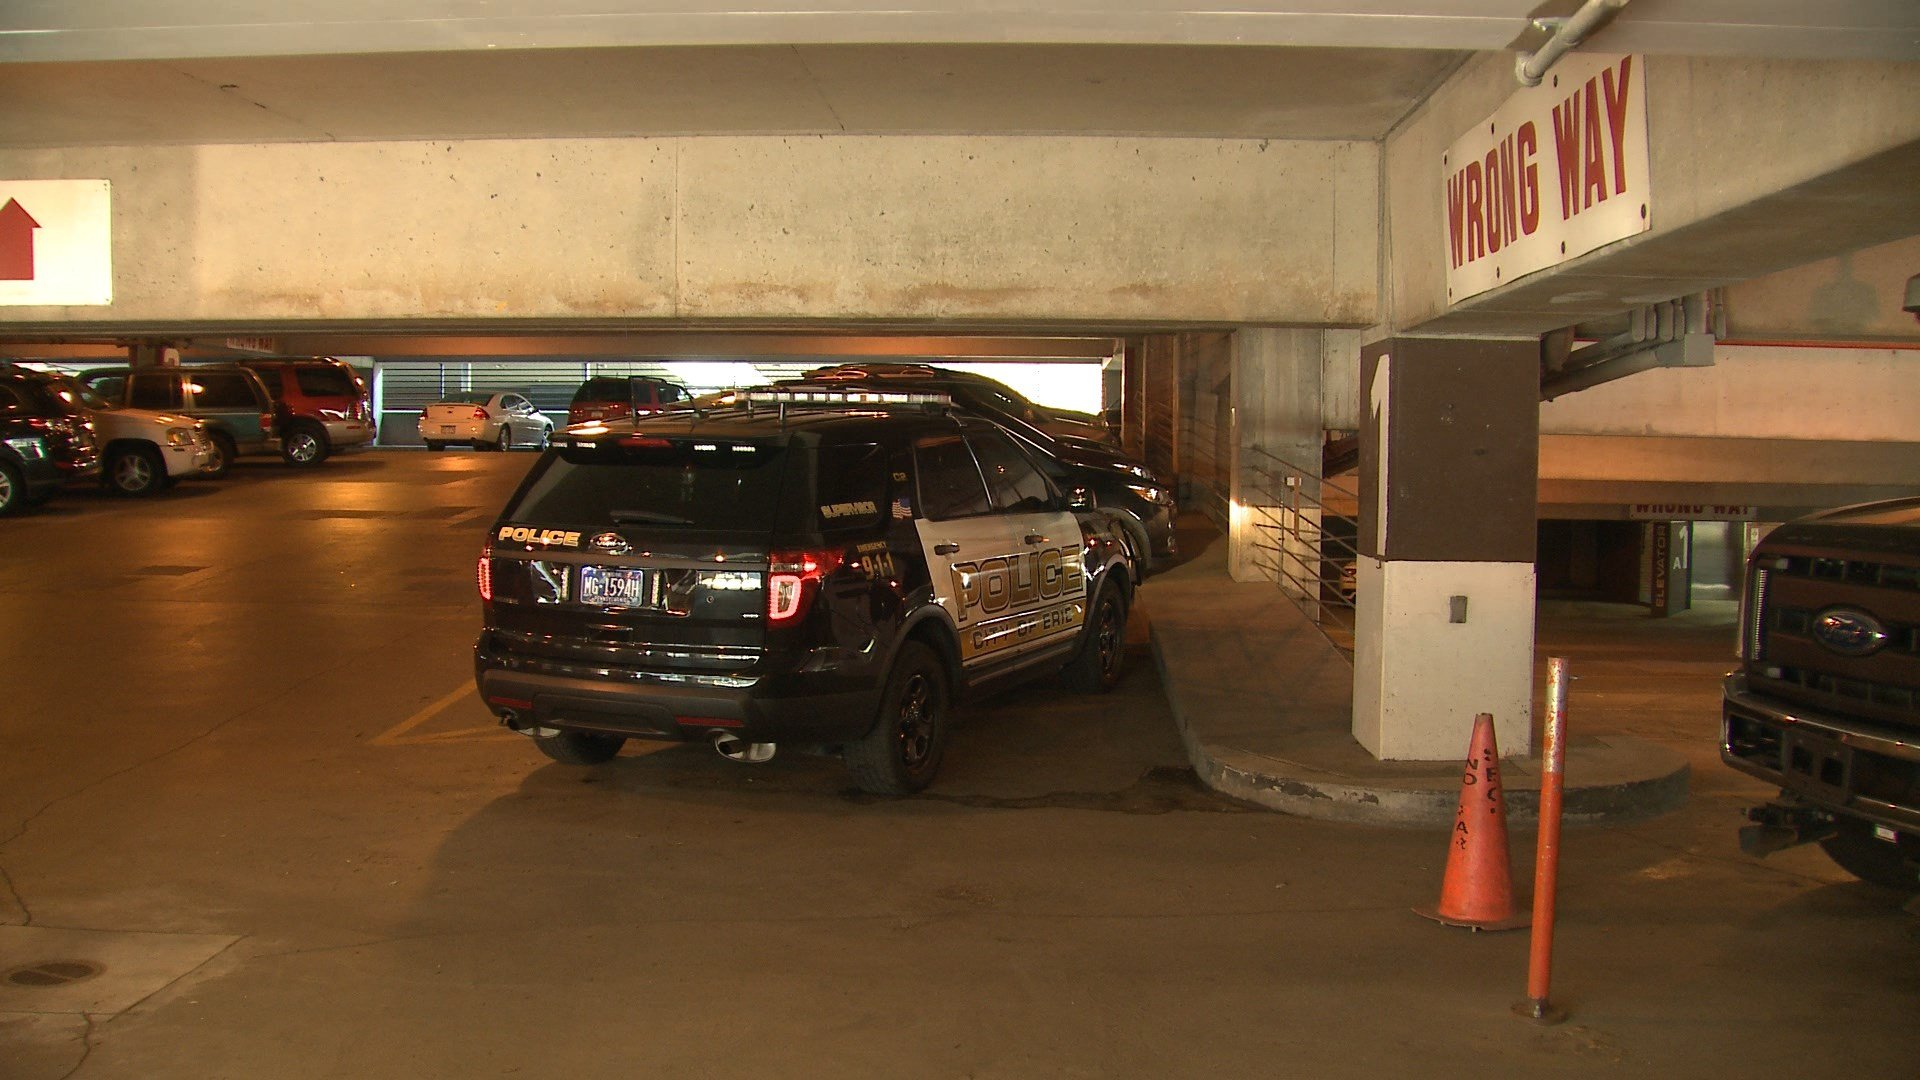 police investigate potential parking garage drug overdose death erie news now wicu and wsee. Black Bedroom Furniture Sets. Home Design Ideas